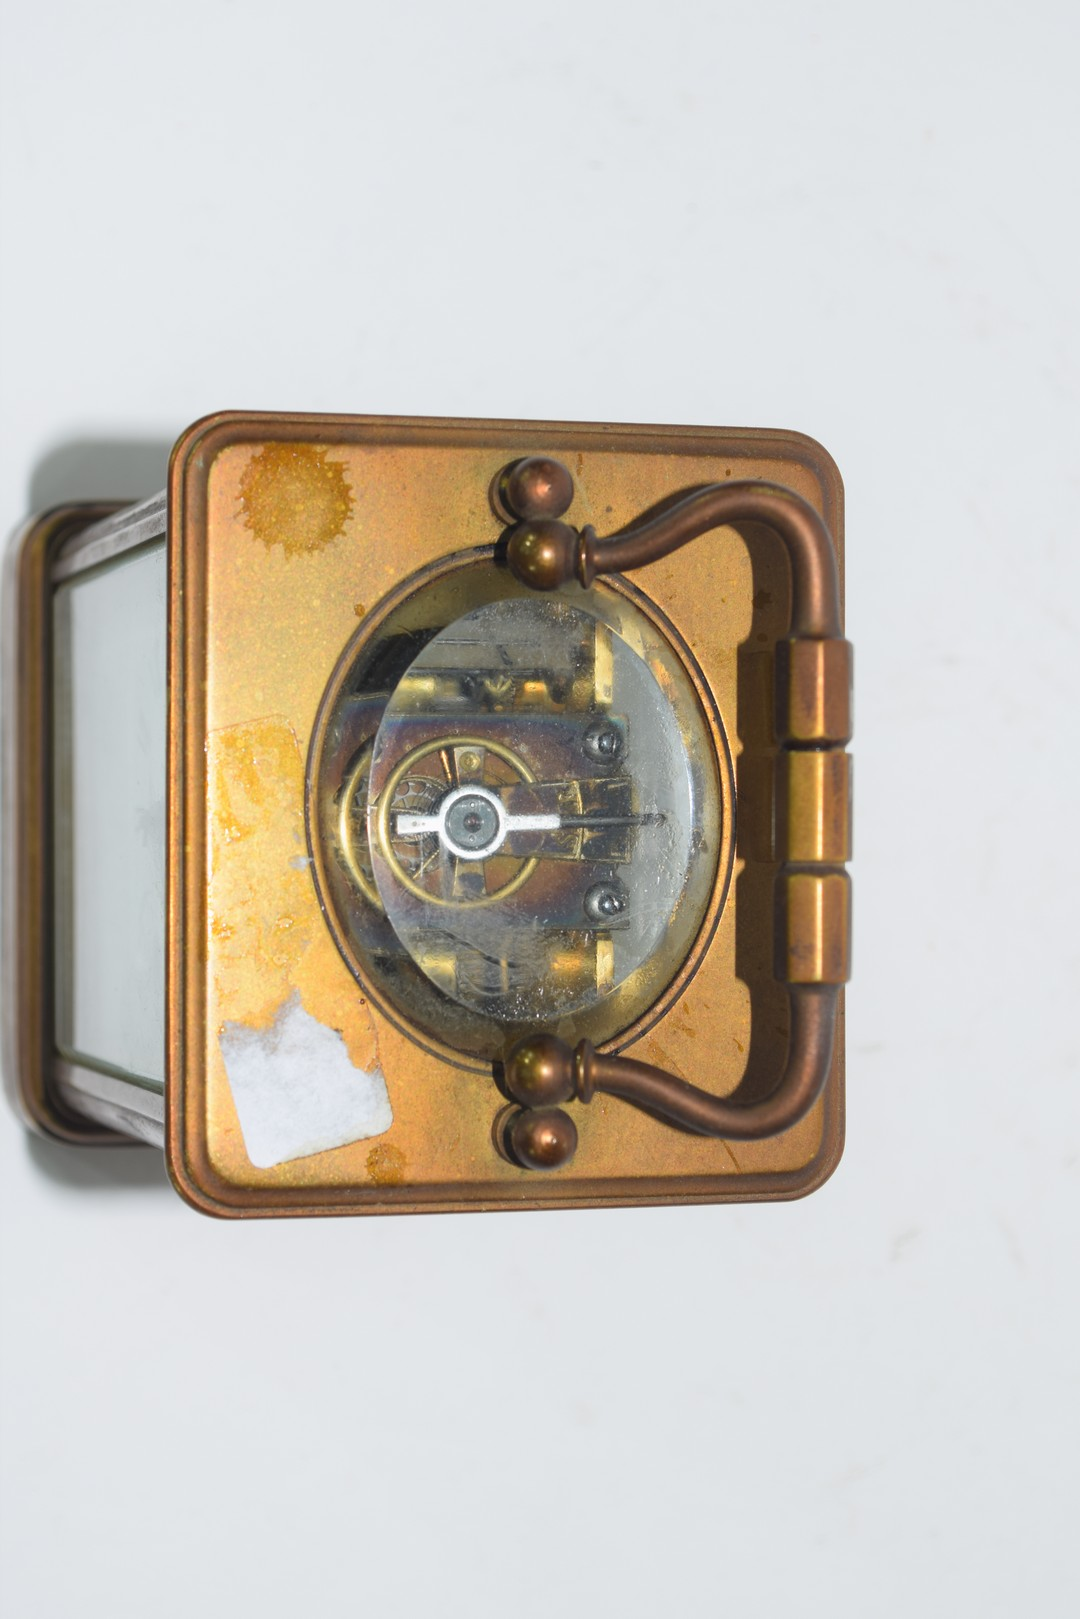 Brass carriage clock - Image 5 of 5